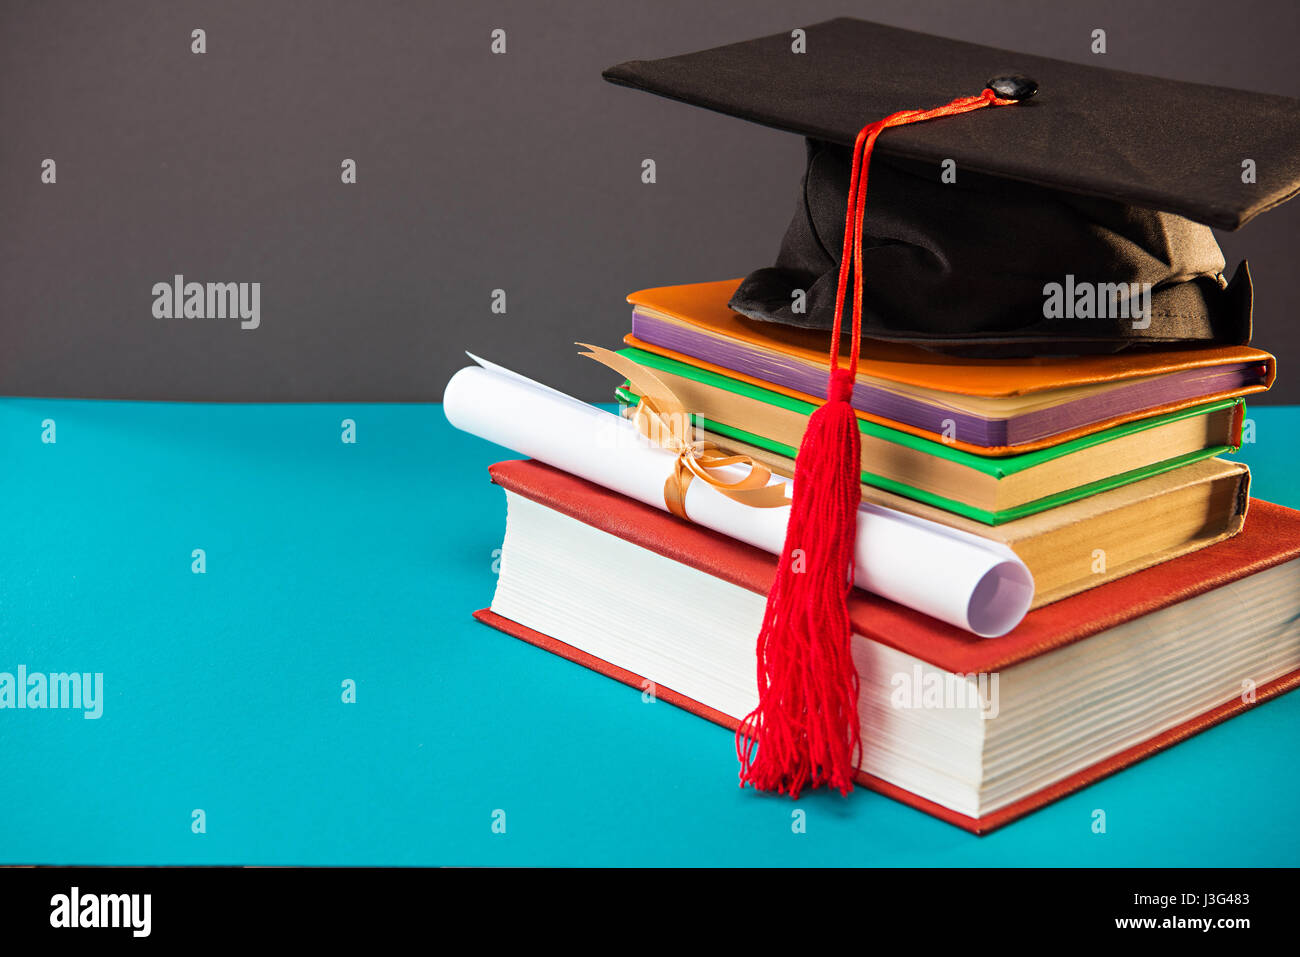 books, diploma and graduation cap with tassel on blue with copy space, education concept - Stock Image